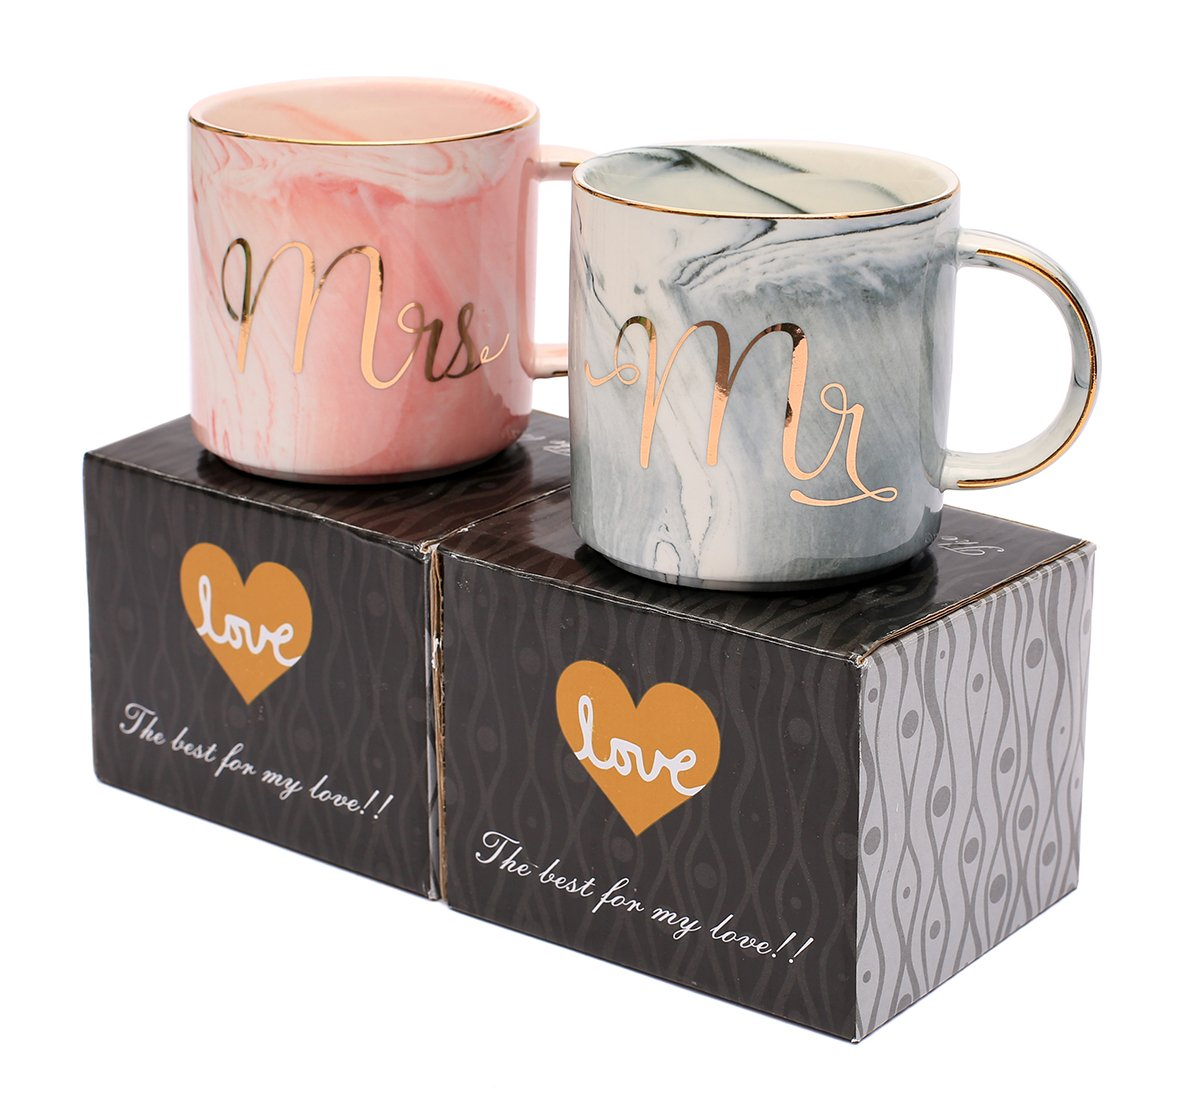 Engagement Mug Set Same Penis And Vagina Forever Funny Couple Gift For Wedding Inappropriate Raunchy Profanity